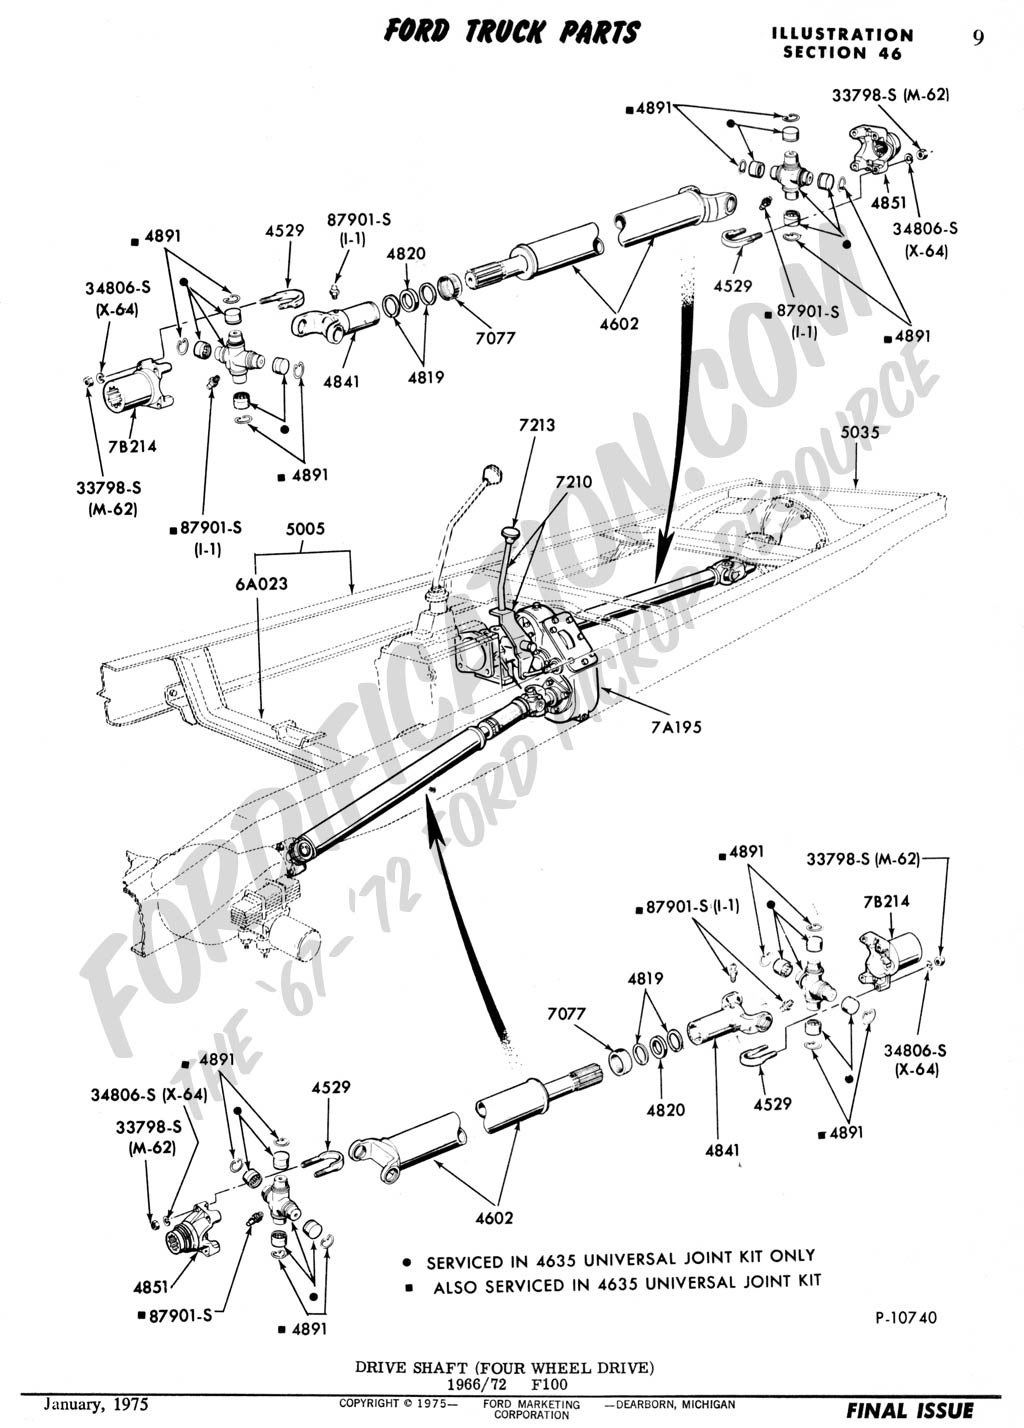 F150 4x4 Front Axle Diagram